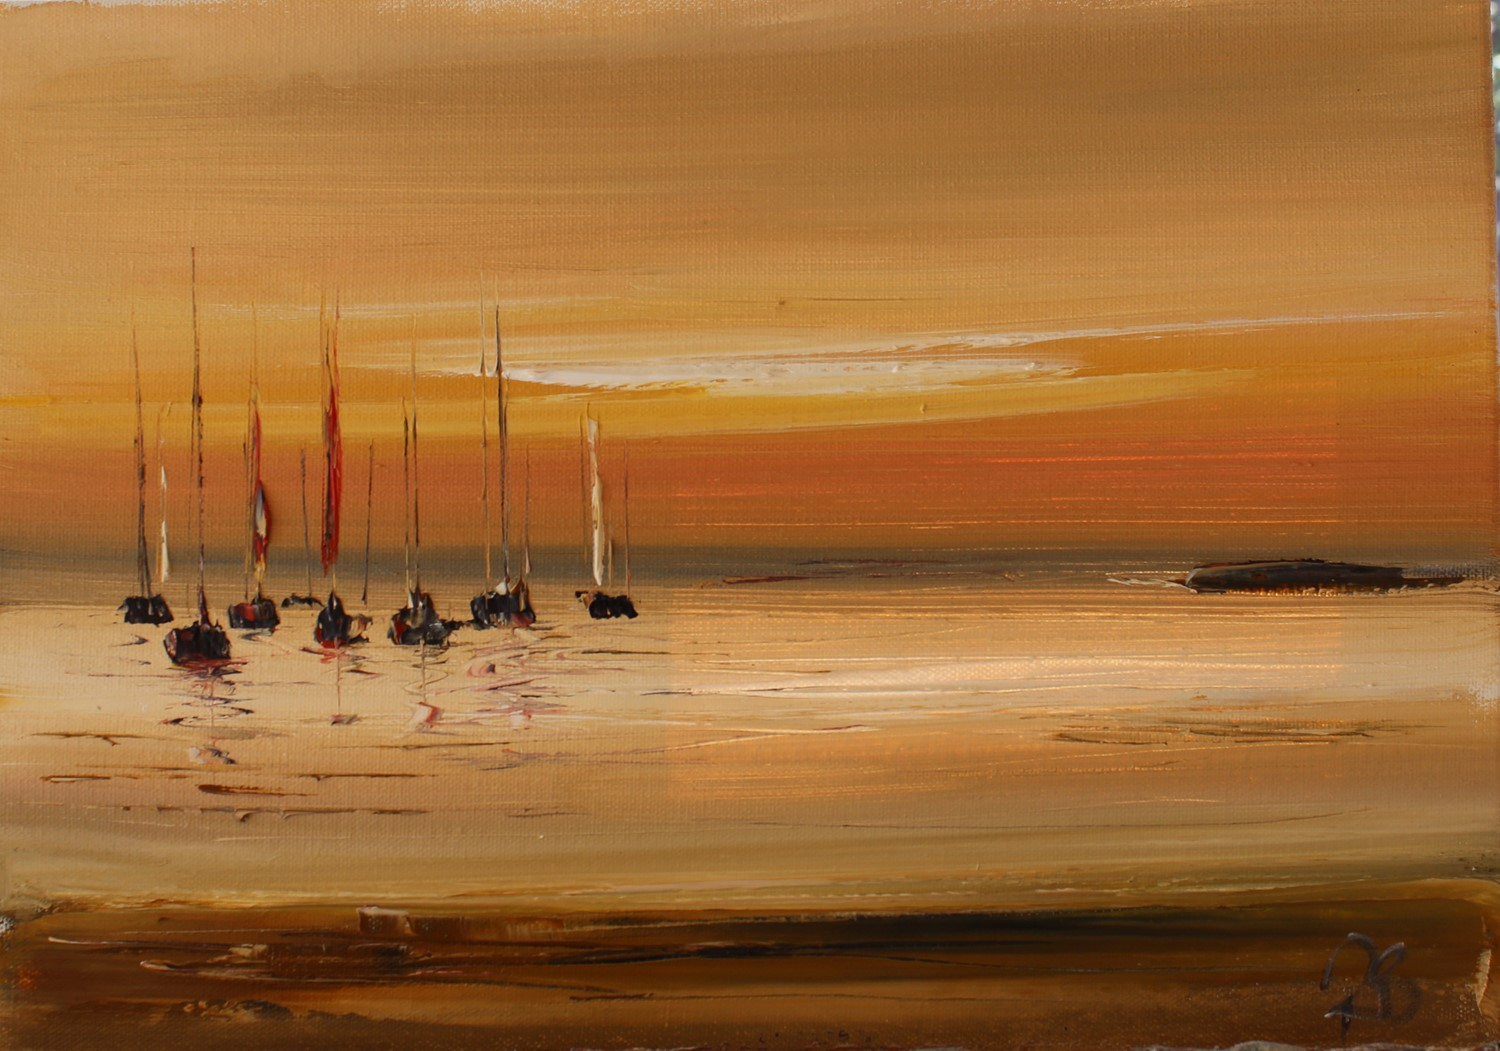 'Yachts and summer nights' by artist Rosanne Barr